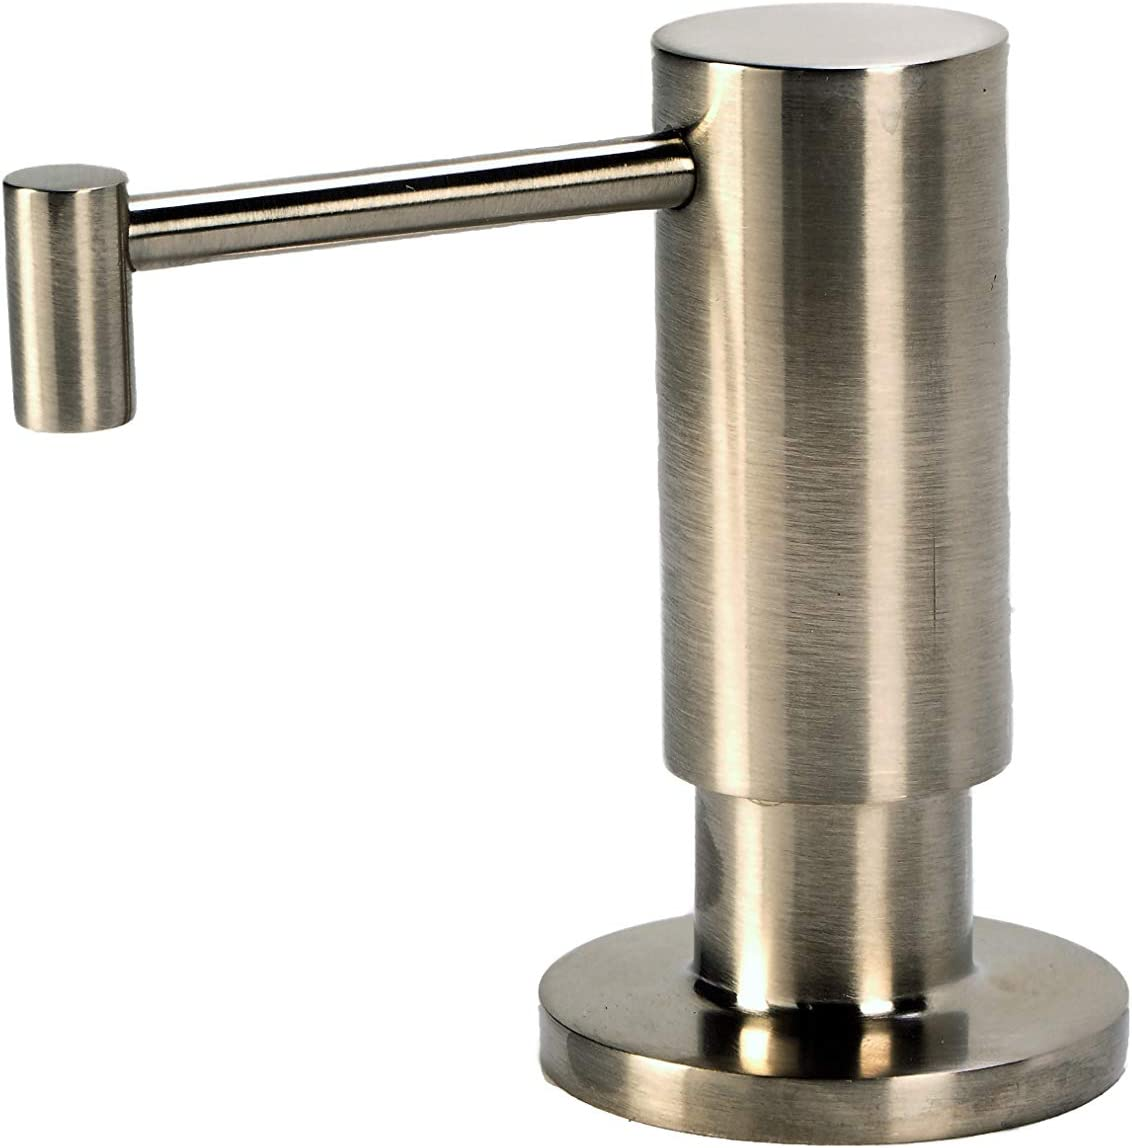 Elbert Mountain Soap Dispenser outlet for Many popular brands Lotion Sink Dis Kitchen